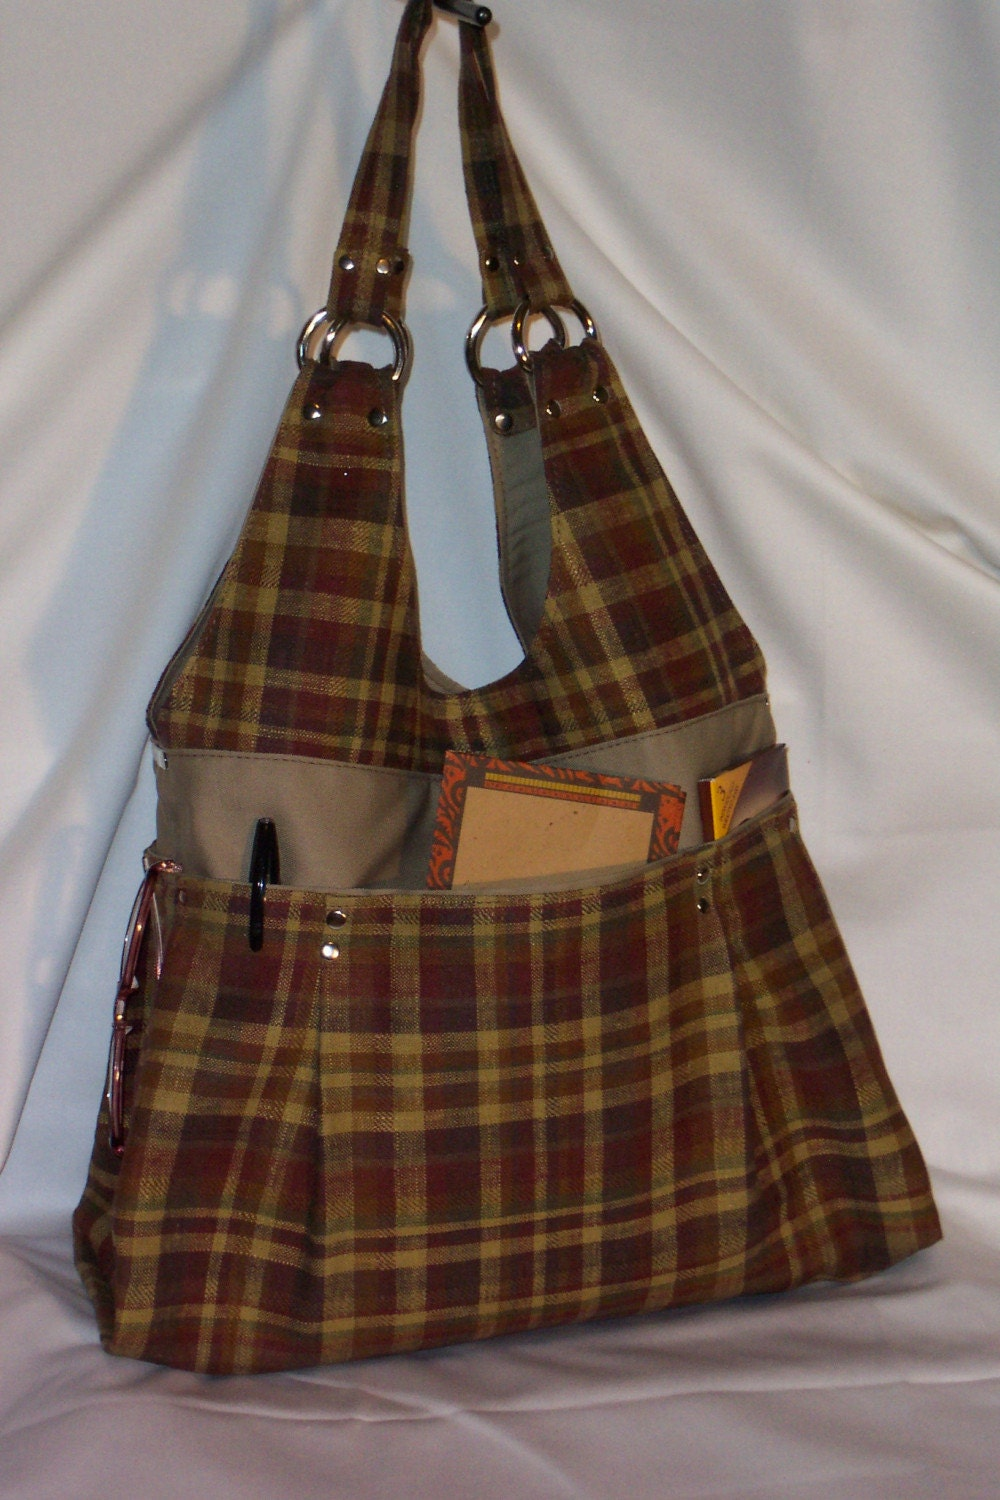 New LA SACCHETTO in Plaid, Great school bag, diaper bag,travel bag, 6 pockets , very roomy